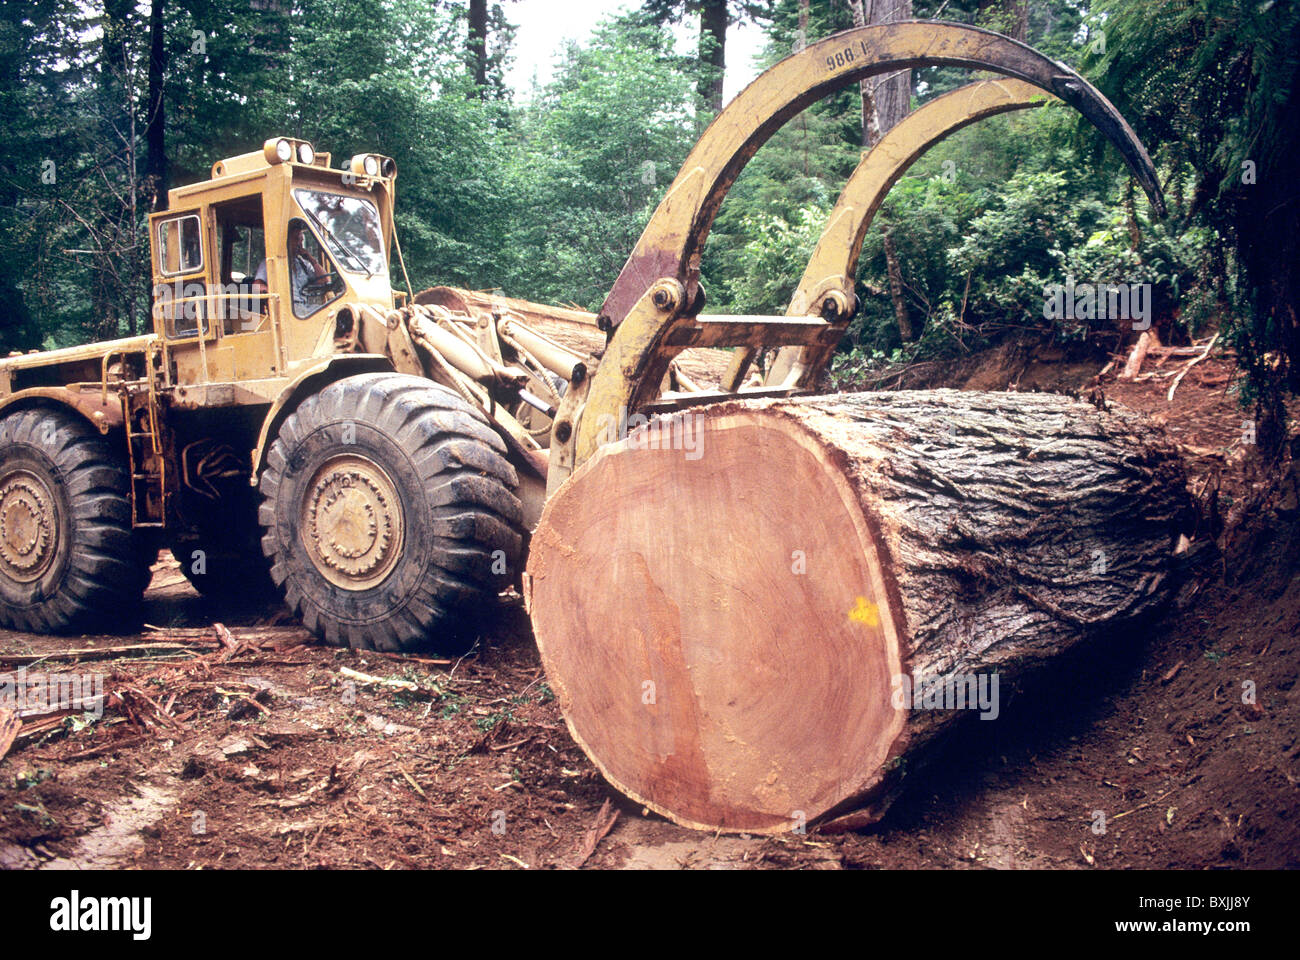 Caterpillar Loader 988 sorting Redwood logs, - Stock Image